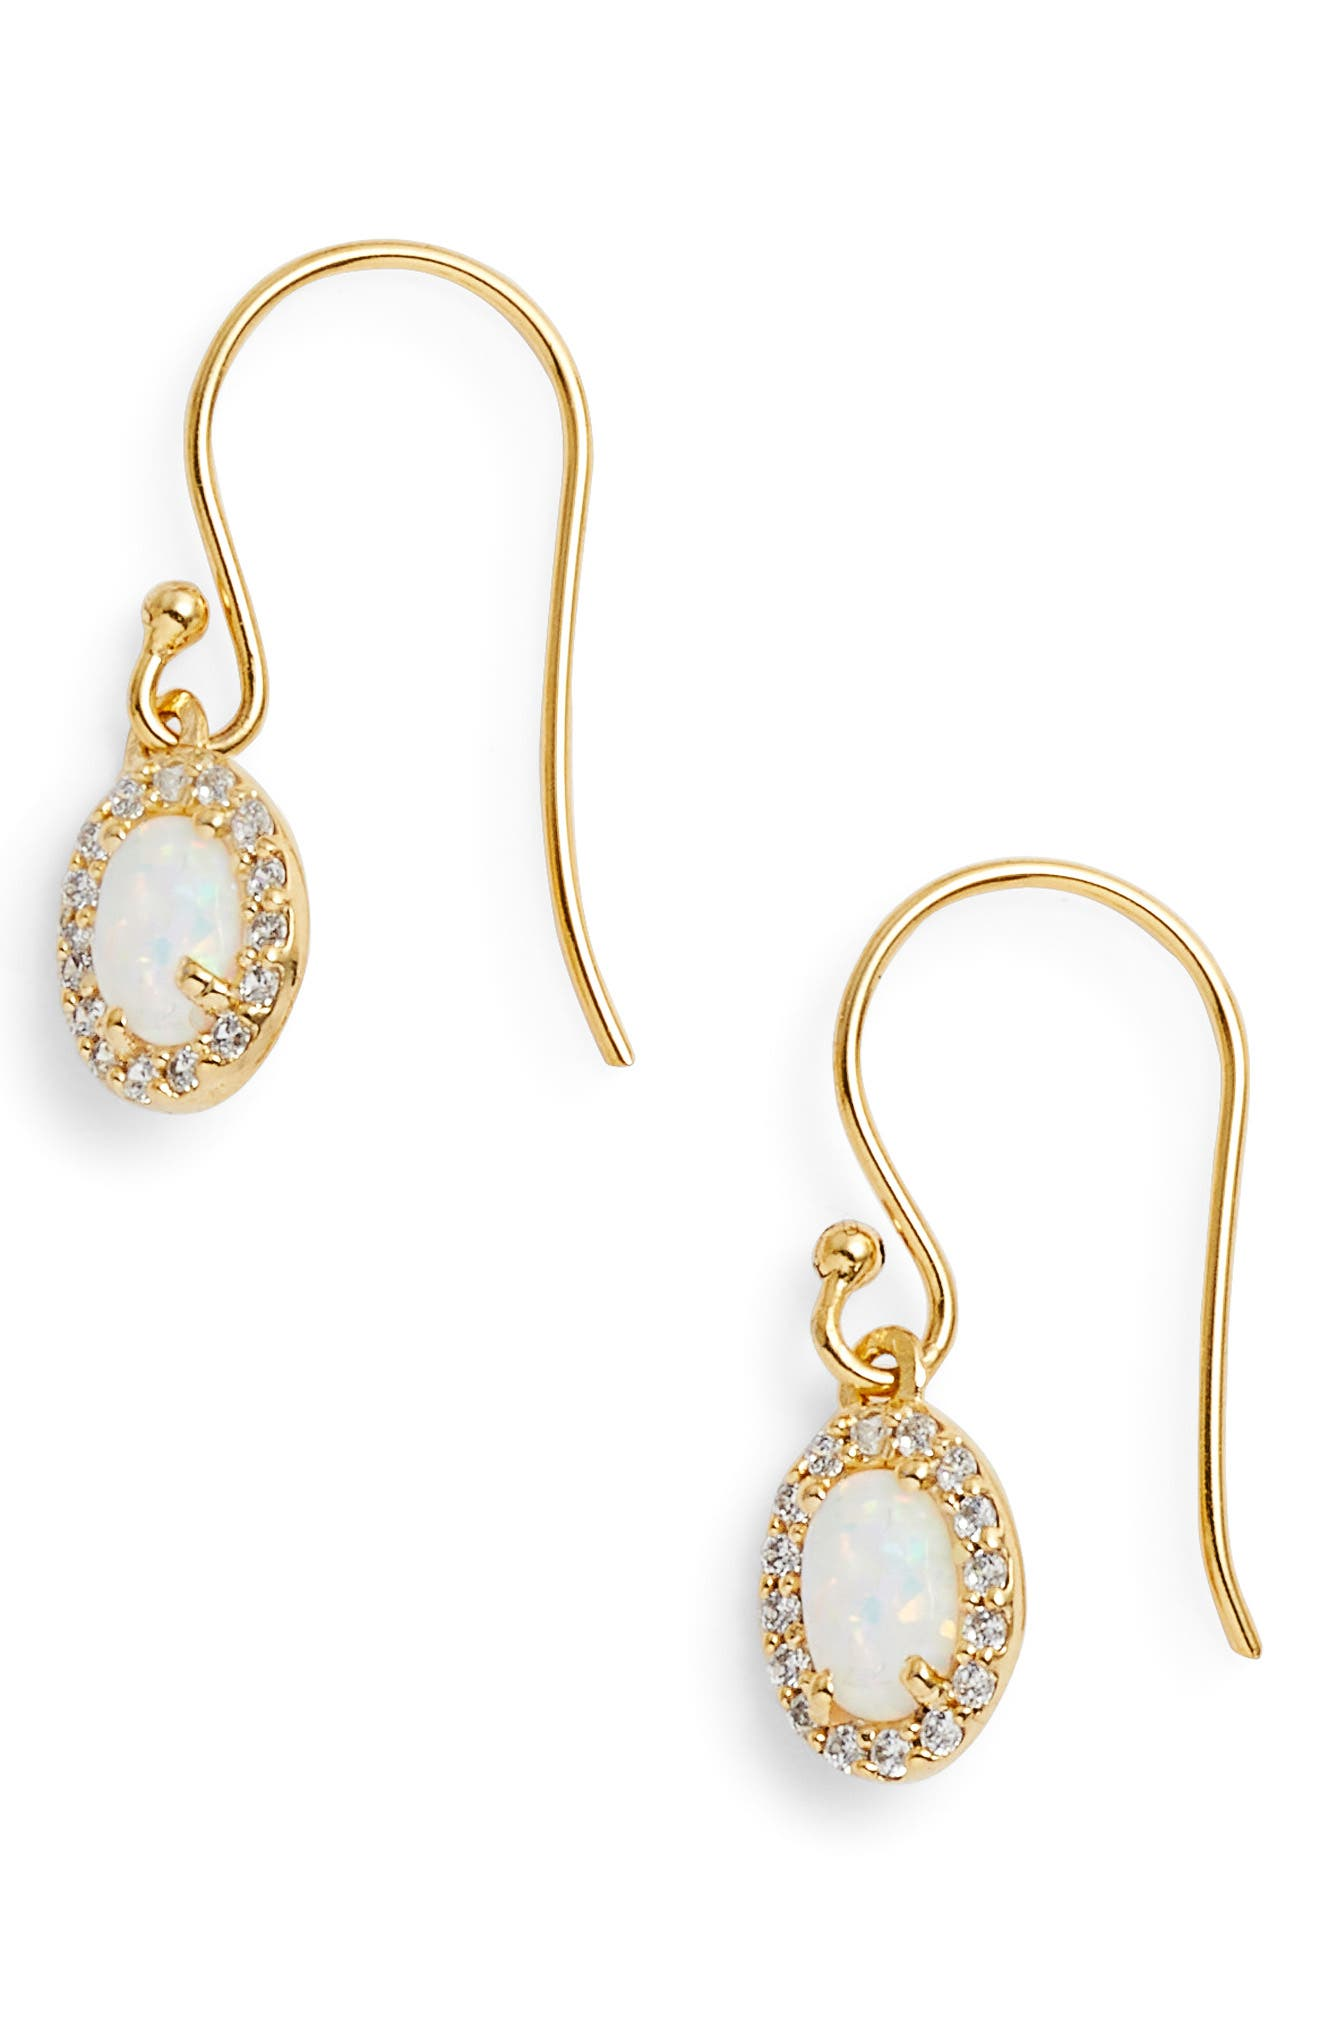 Sydney Oval Drop Earrings,                             Main thumbnail 1, color,                             Gold